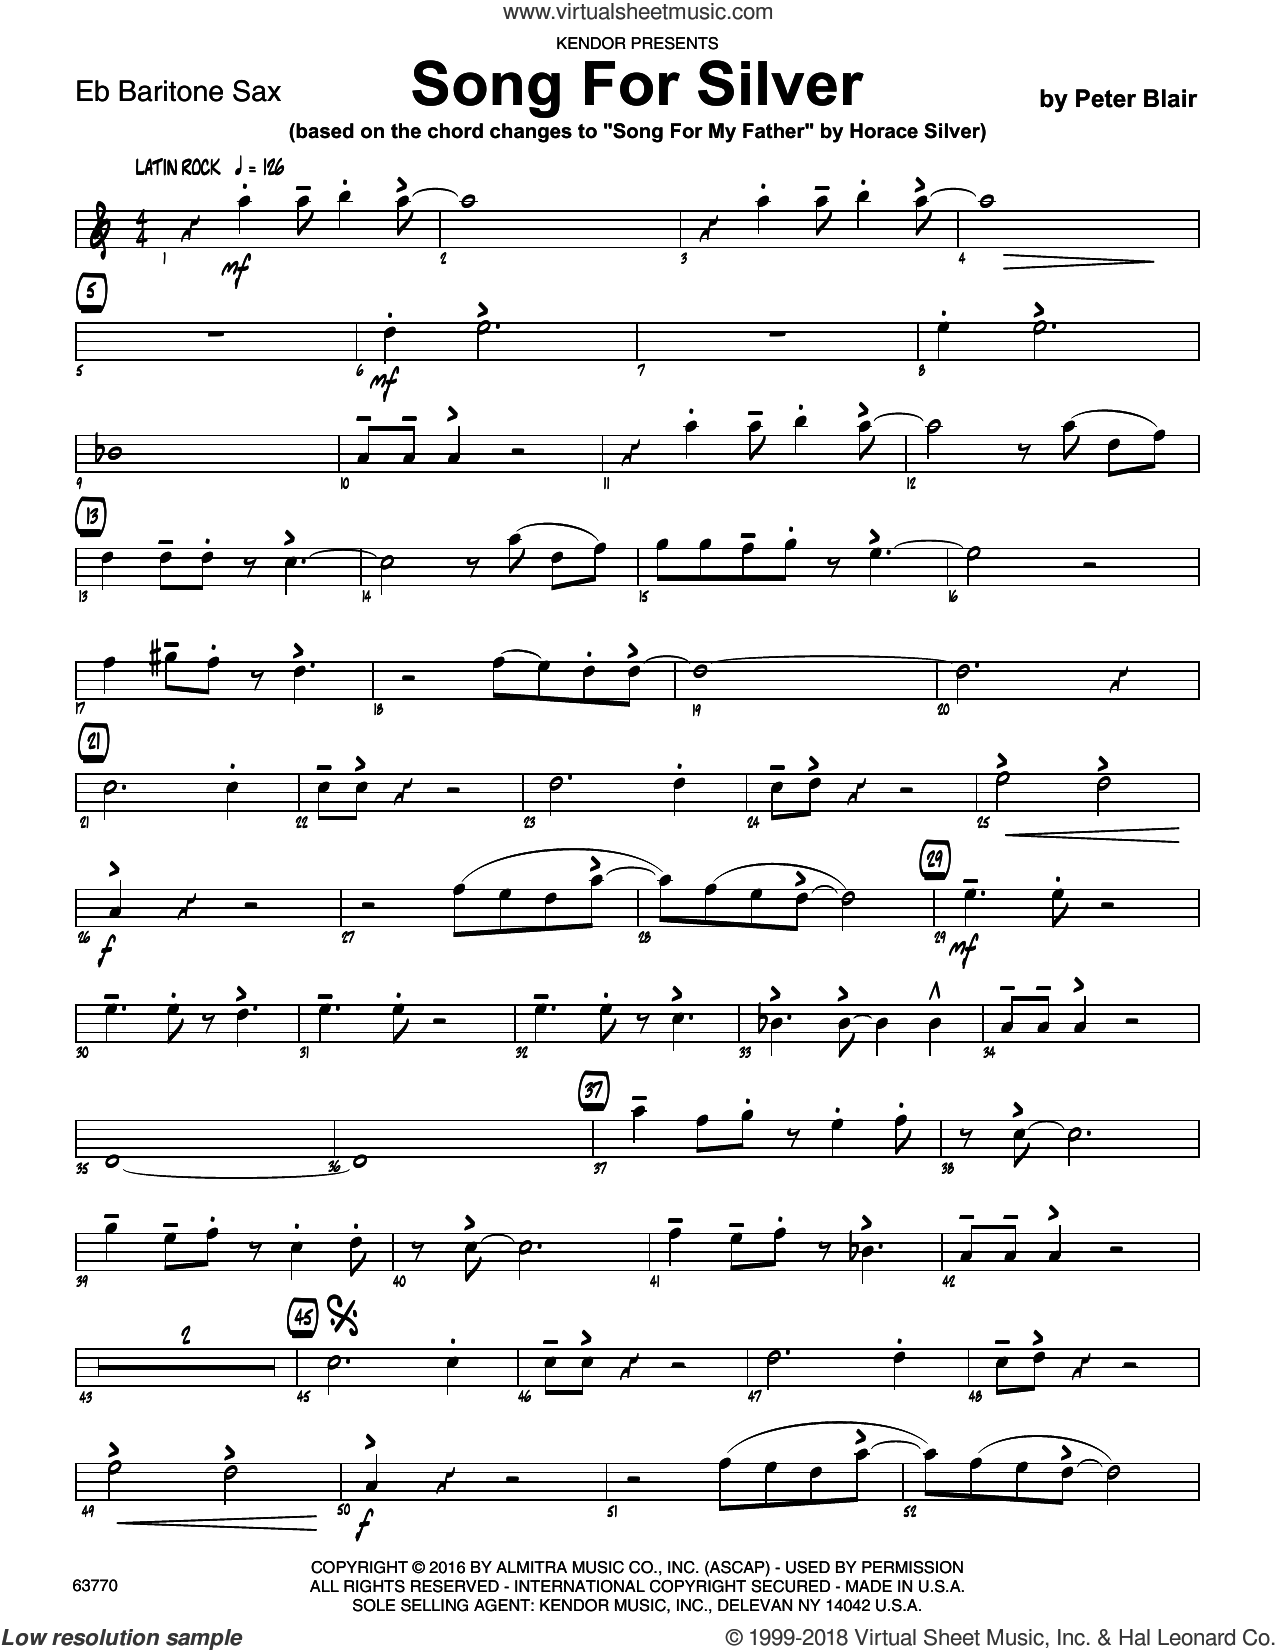 Song For Silver (based on Song For My Father by Horace Silver) sheet music for jazz band (Eb baritone saxophone) by Peter Blair, intermediate skill level